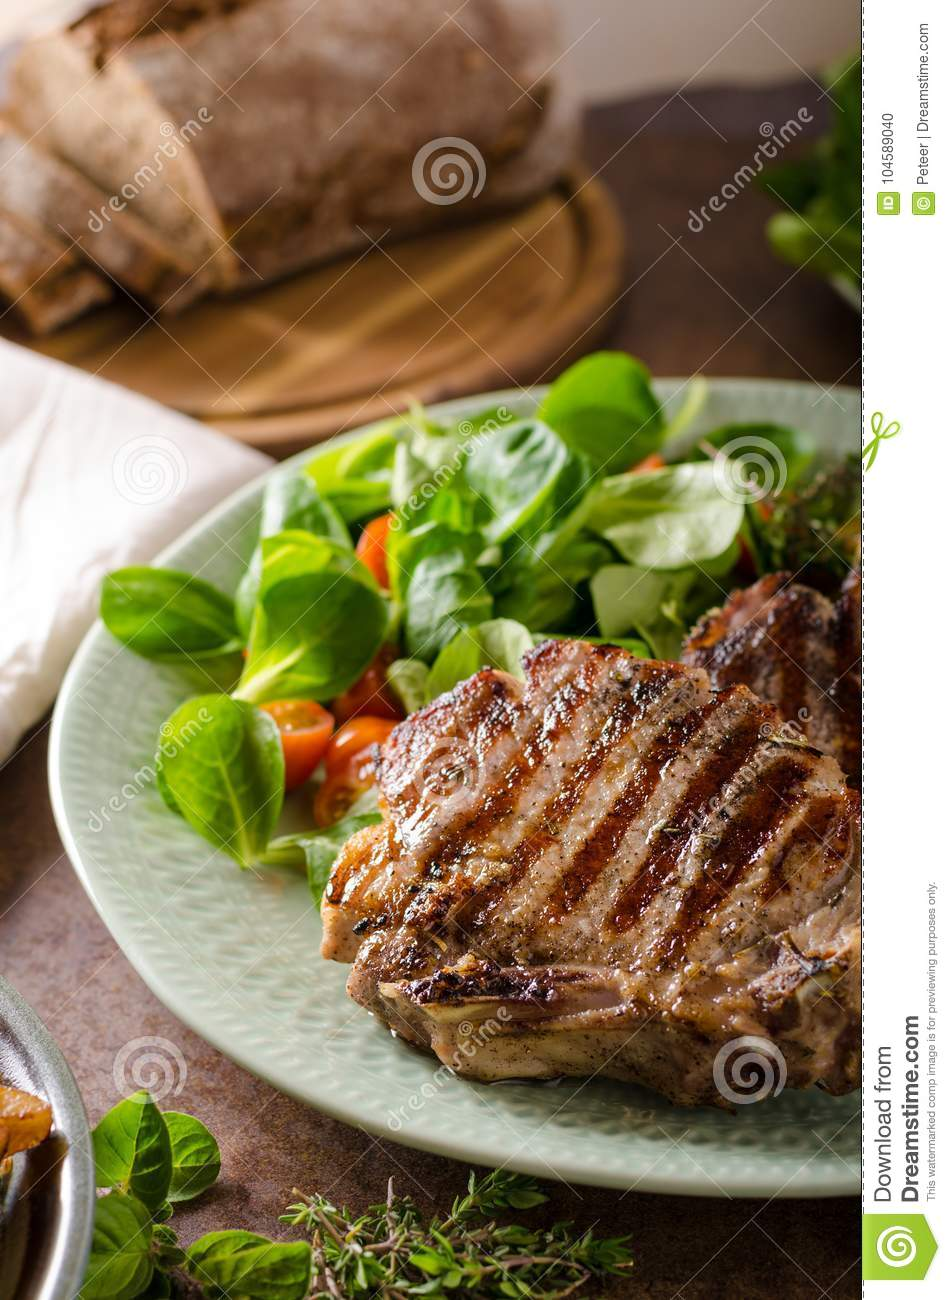 Grilled pork chops